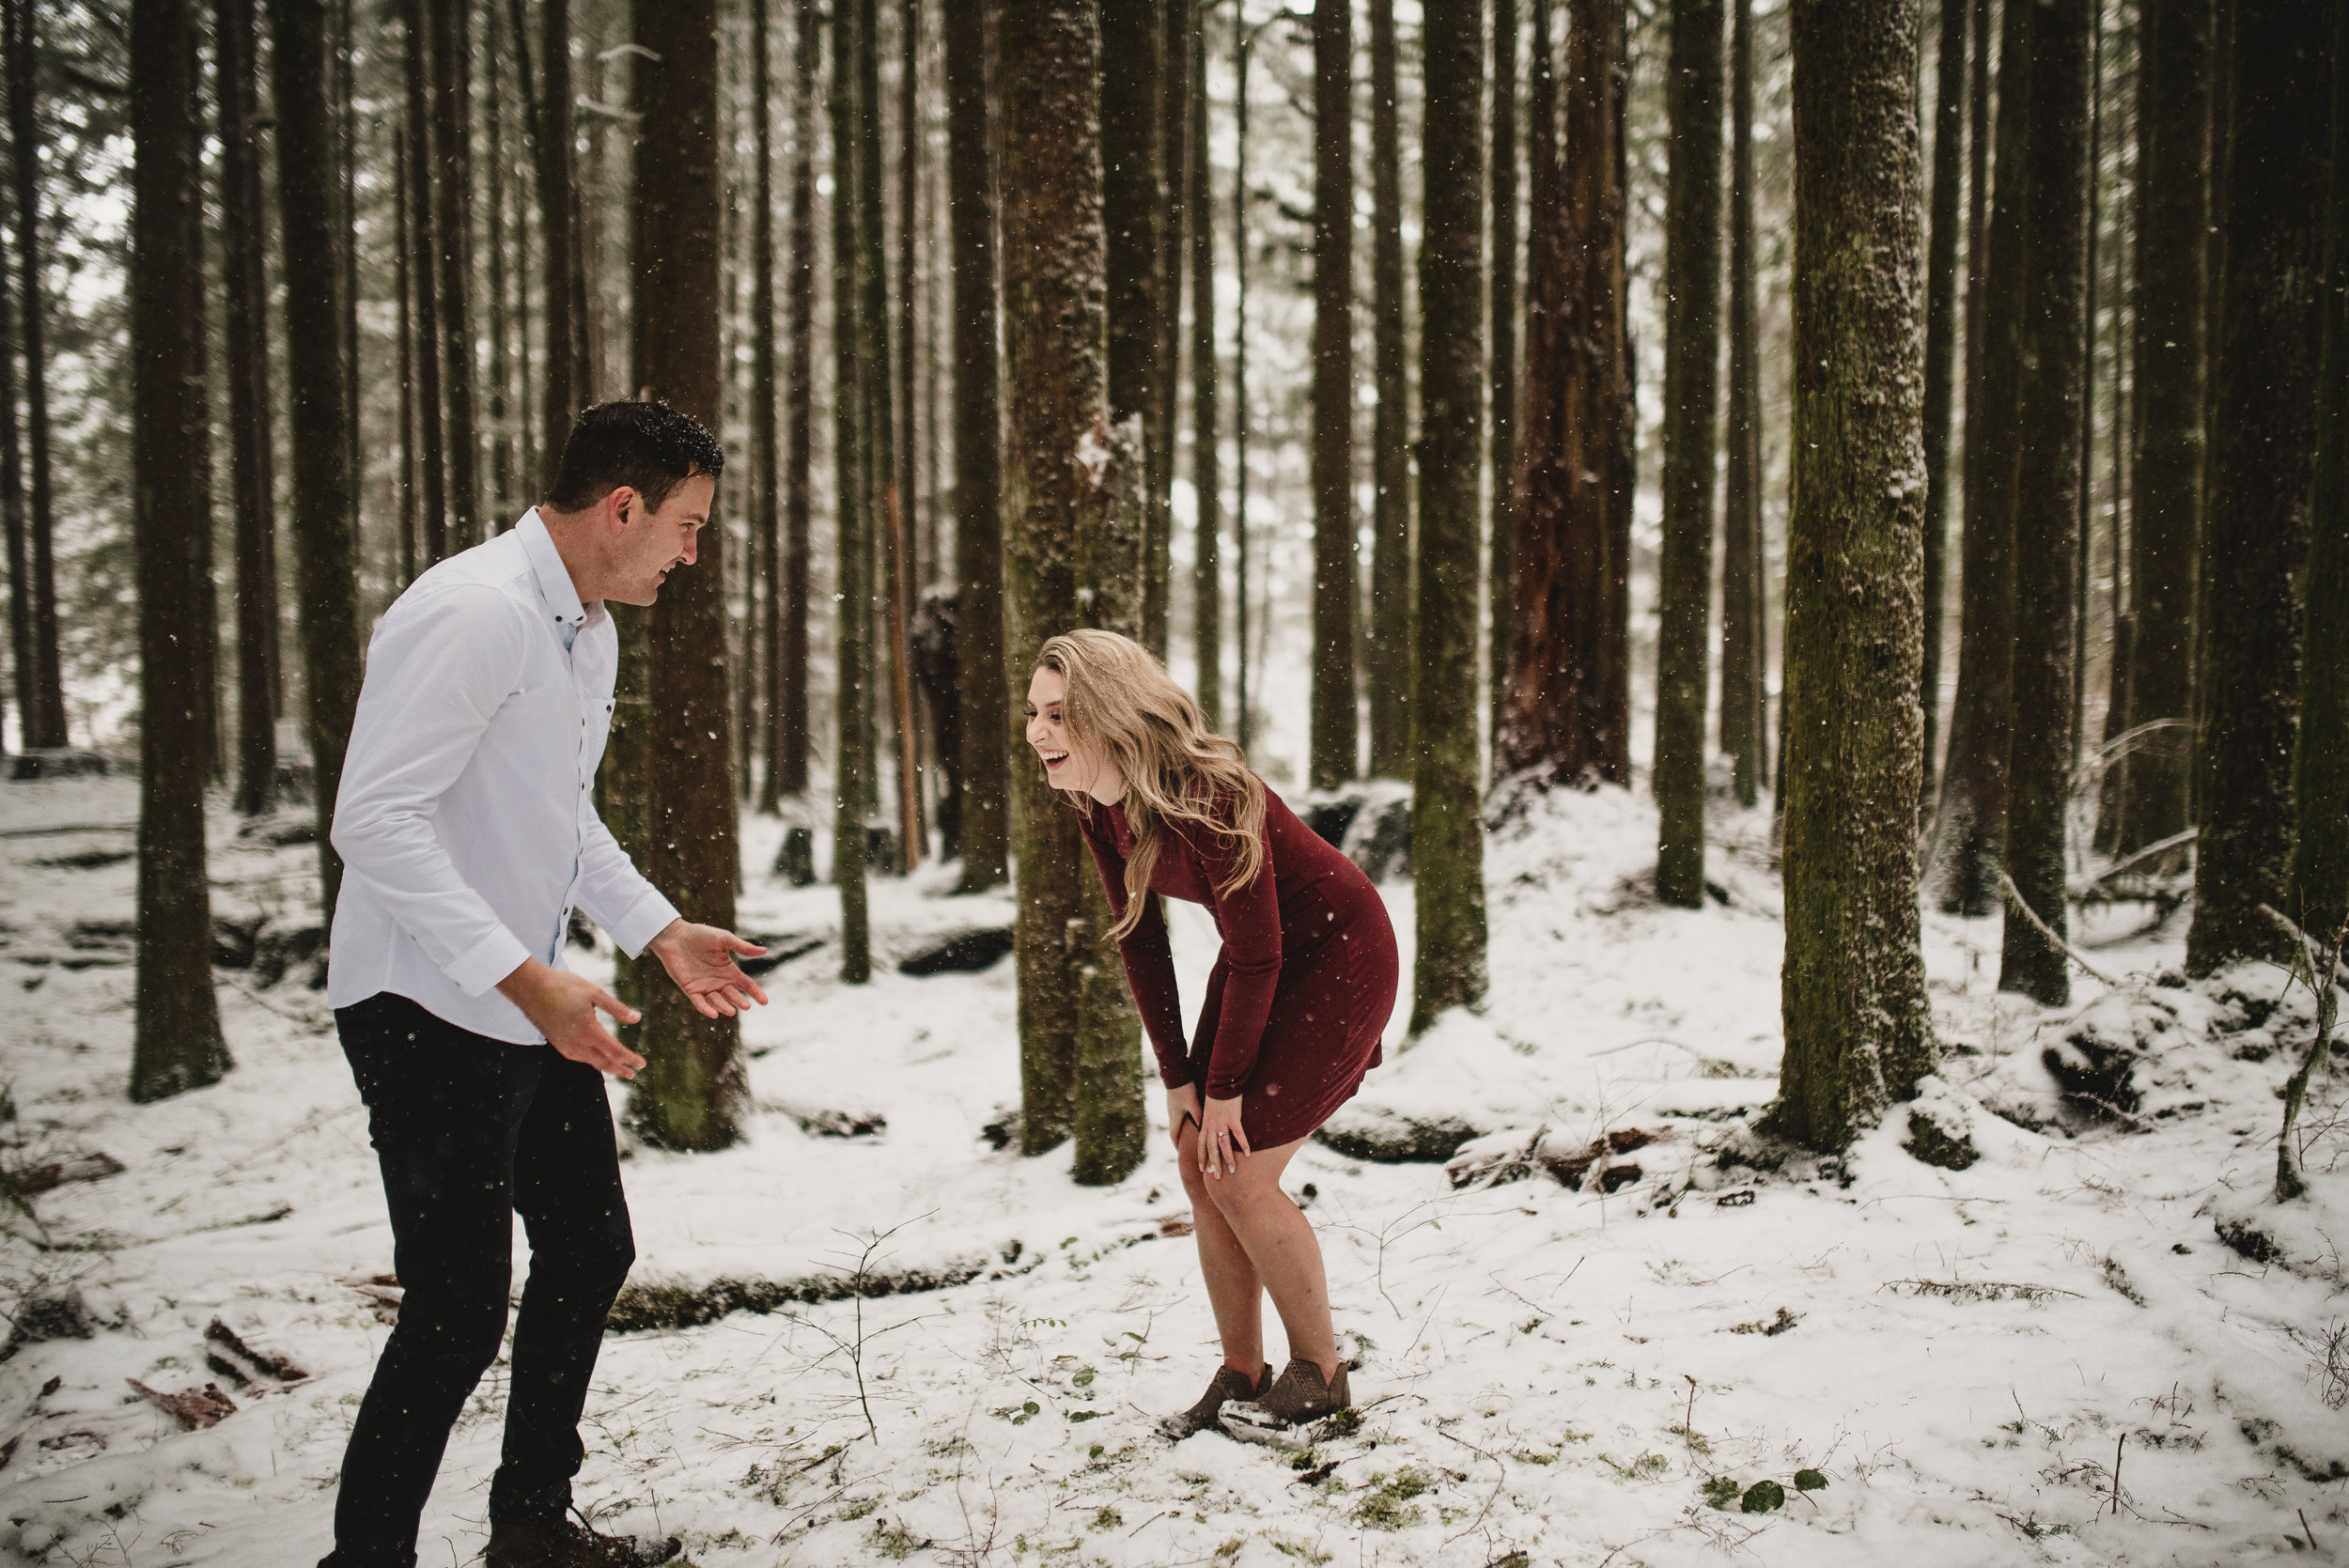 Golden Ears Park Engagement session - Vancouver Wedding and elopement photographer